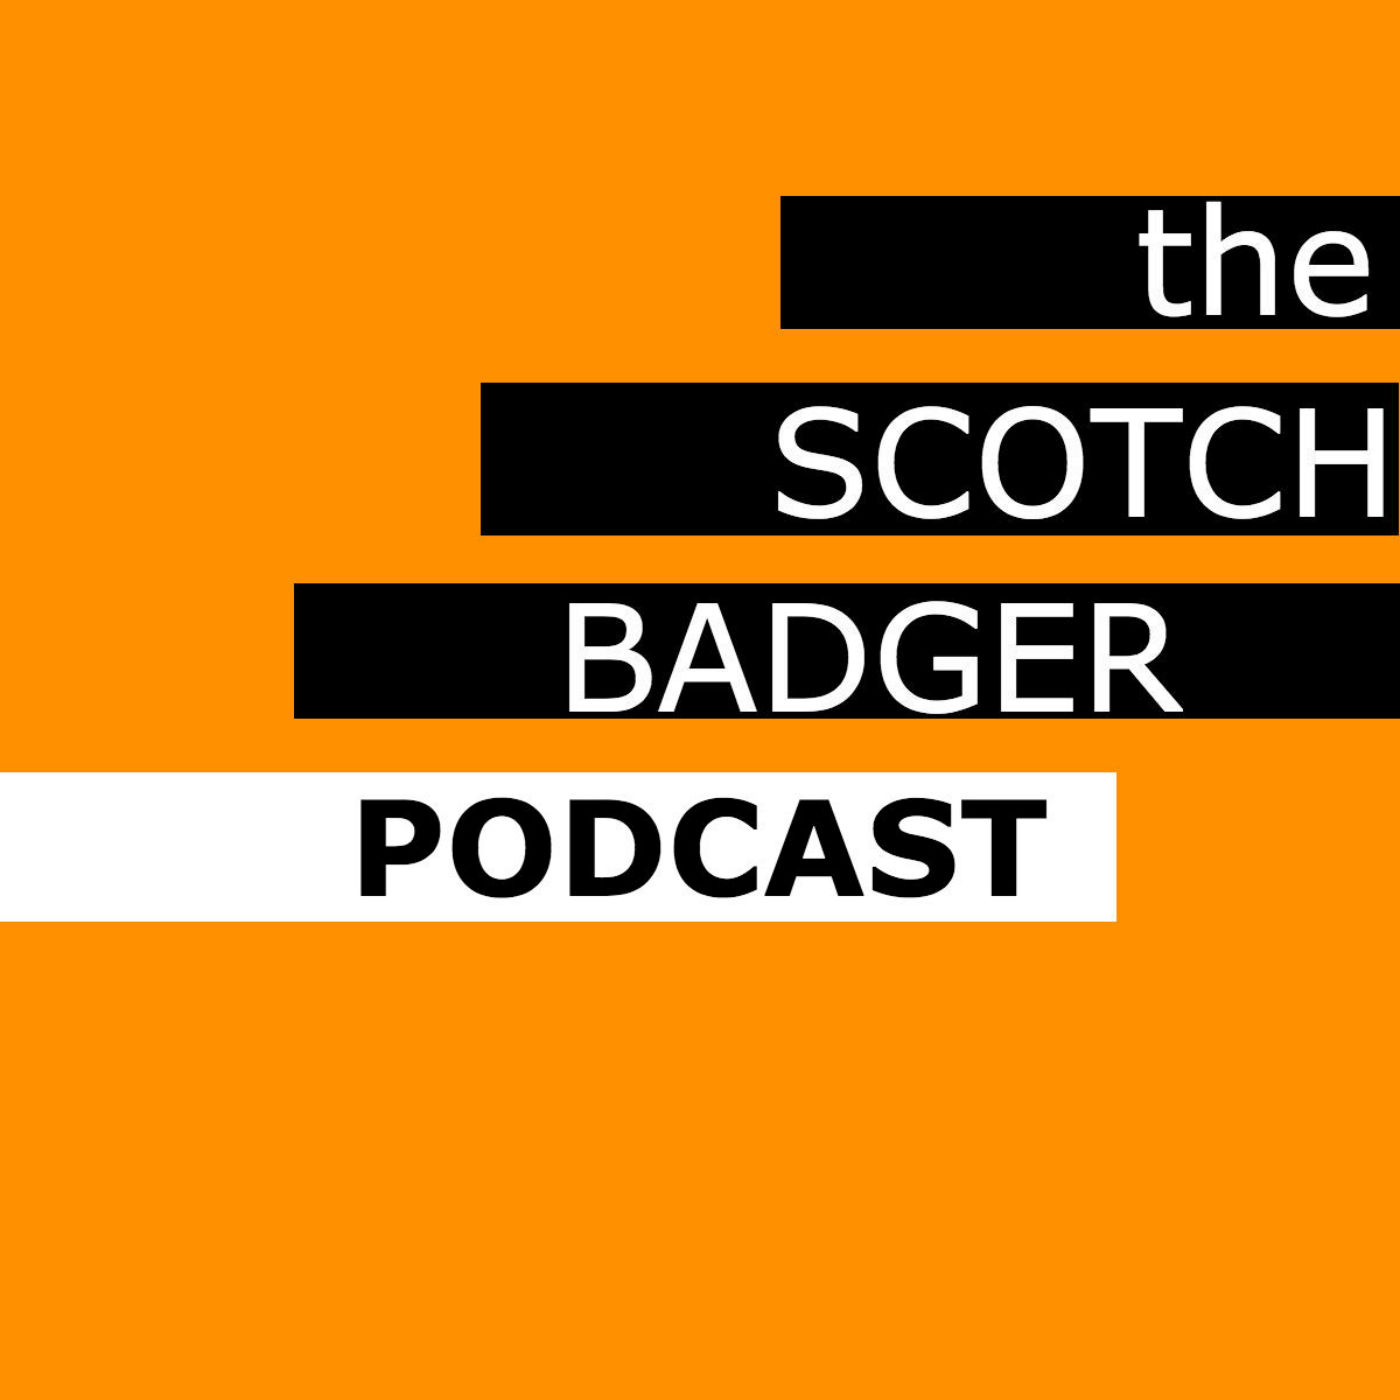 theScotchBadger